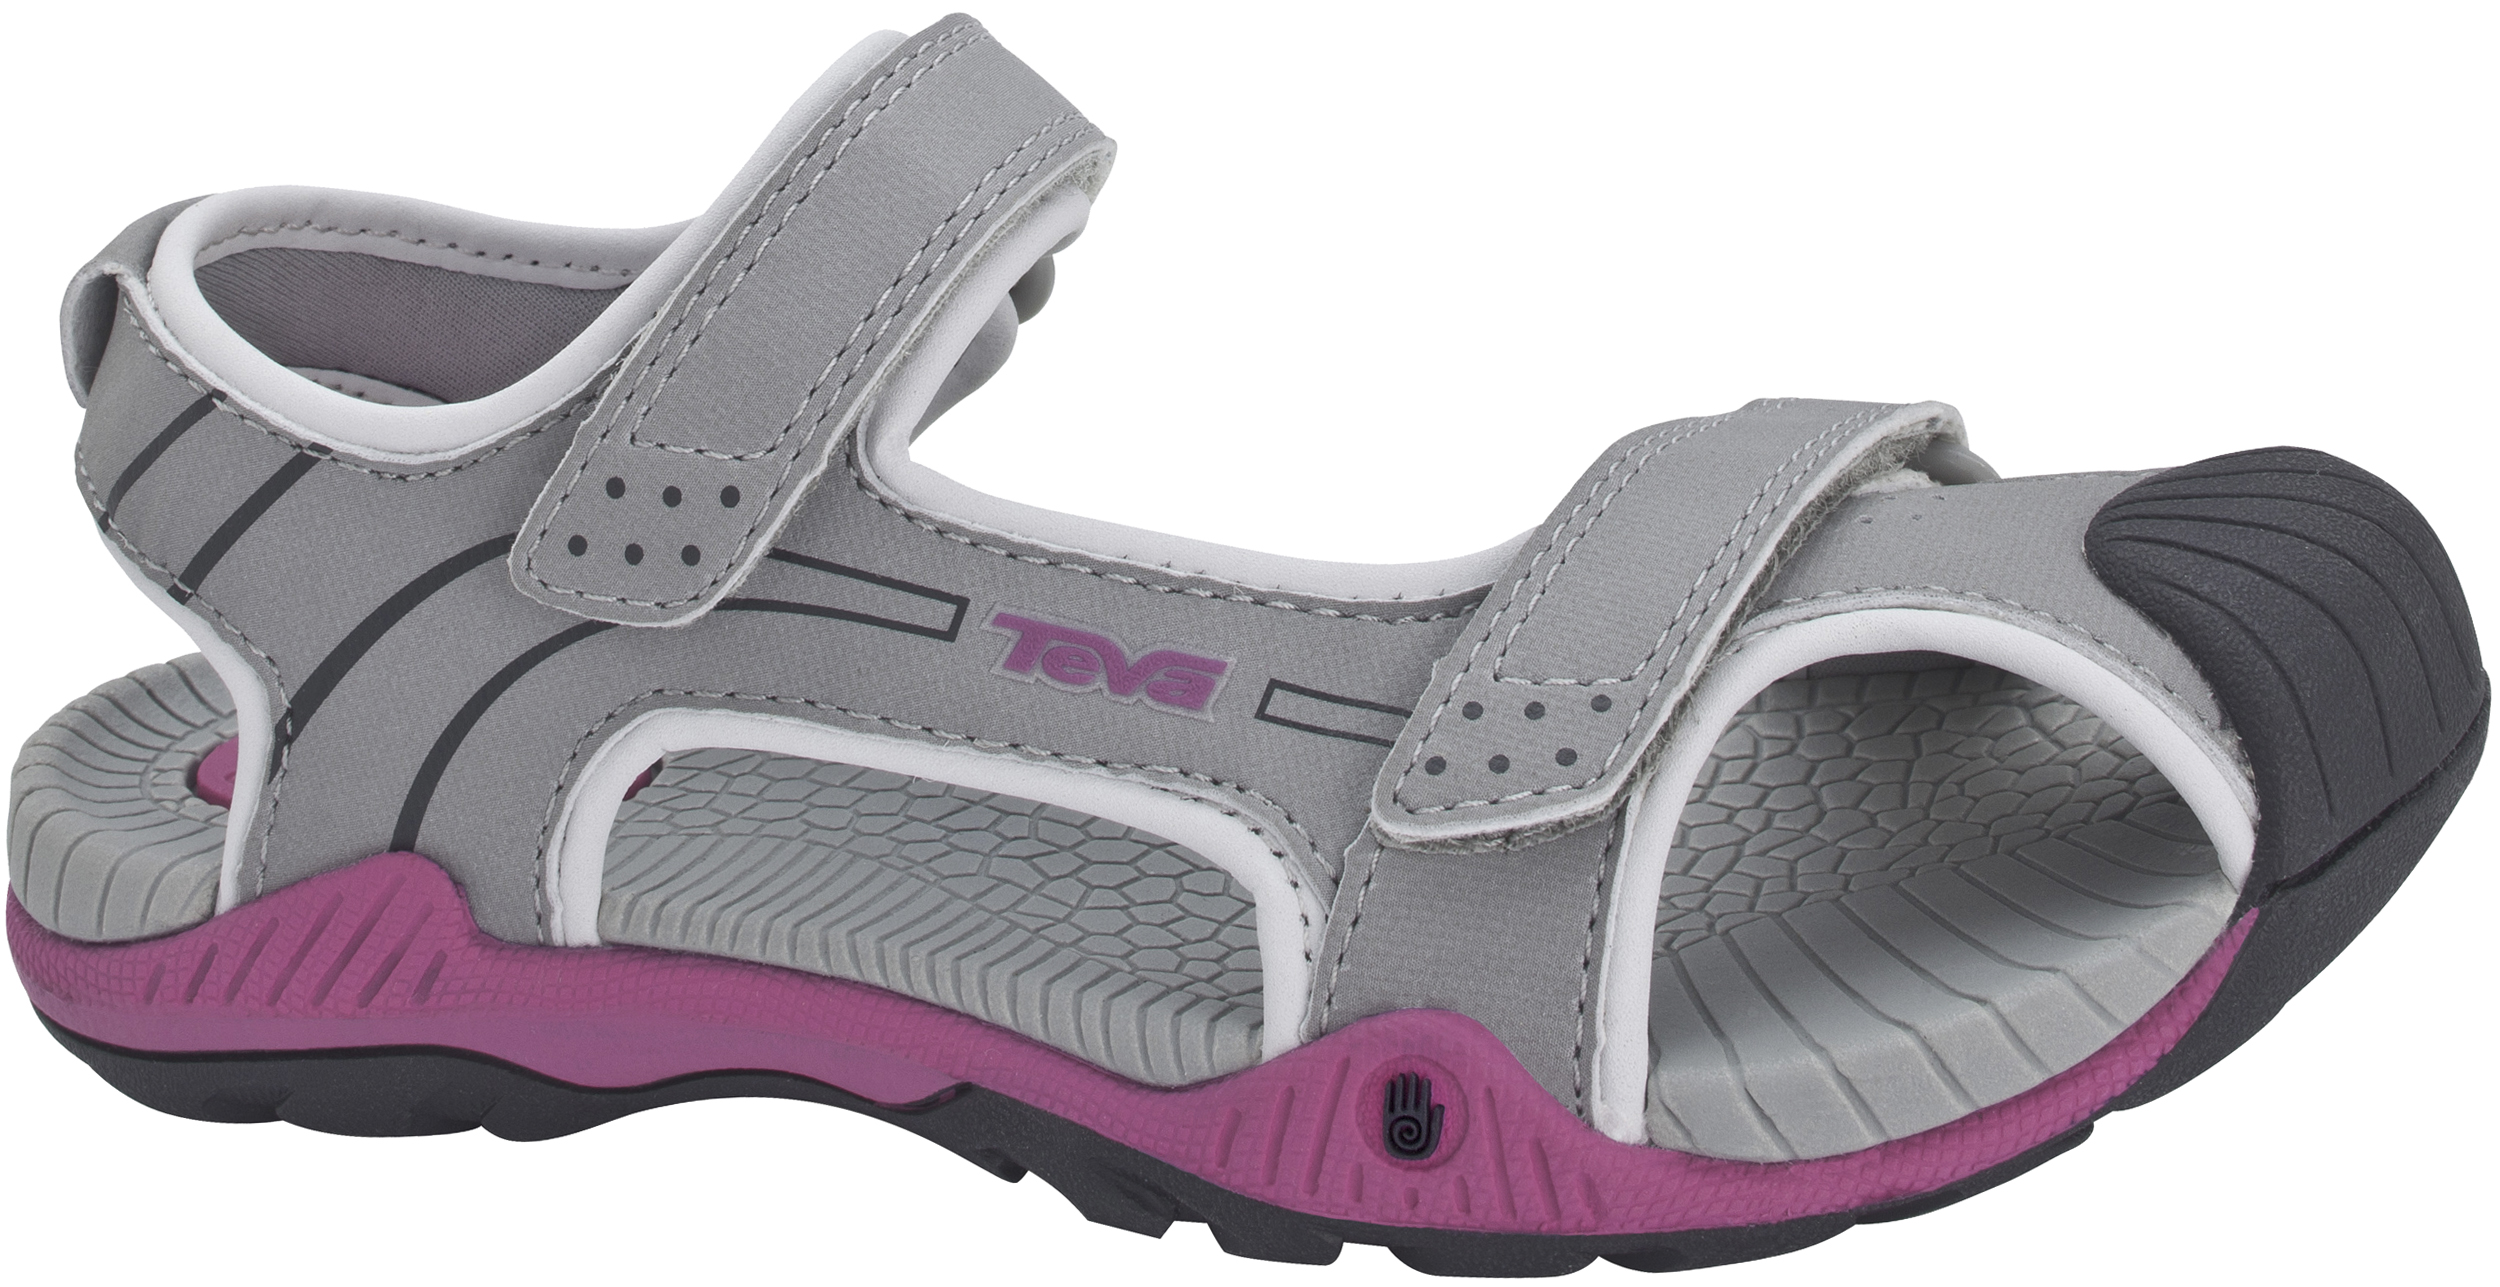 ed4f803edc163 Teva Toachi 2 Sandals - Children to Youths